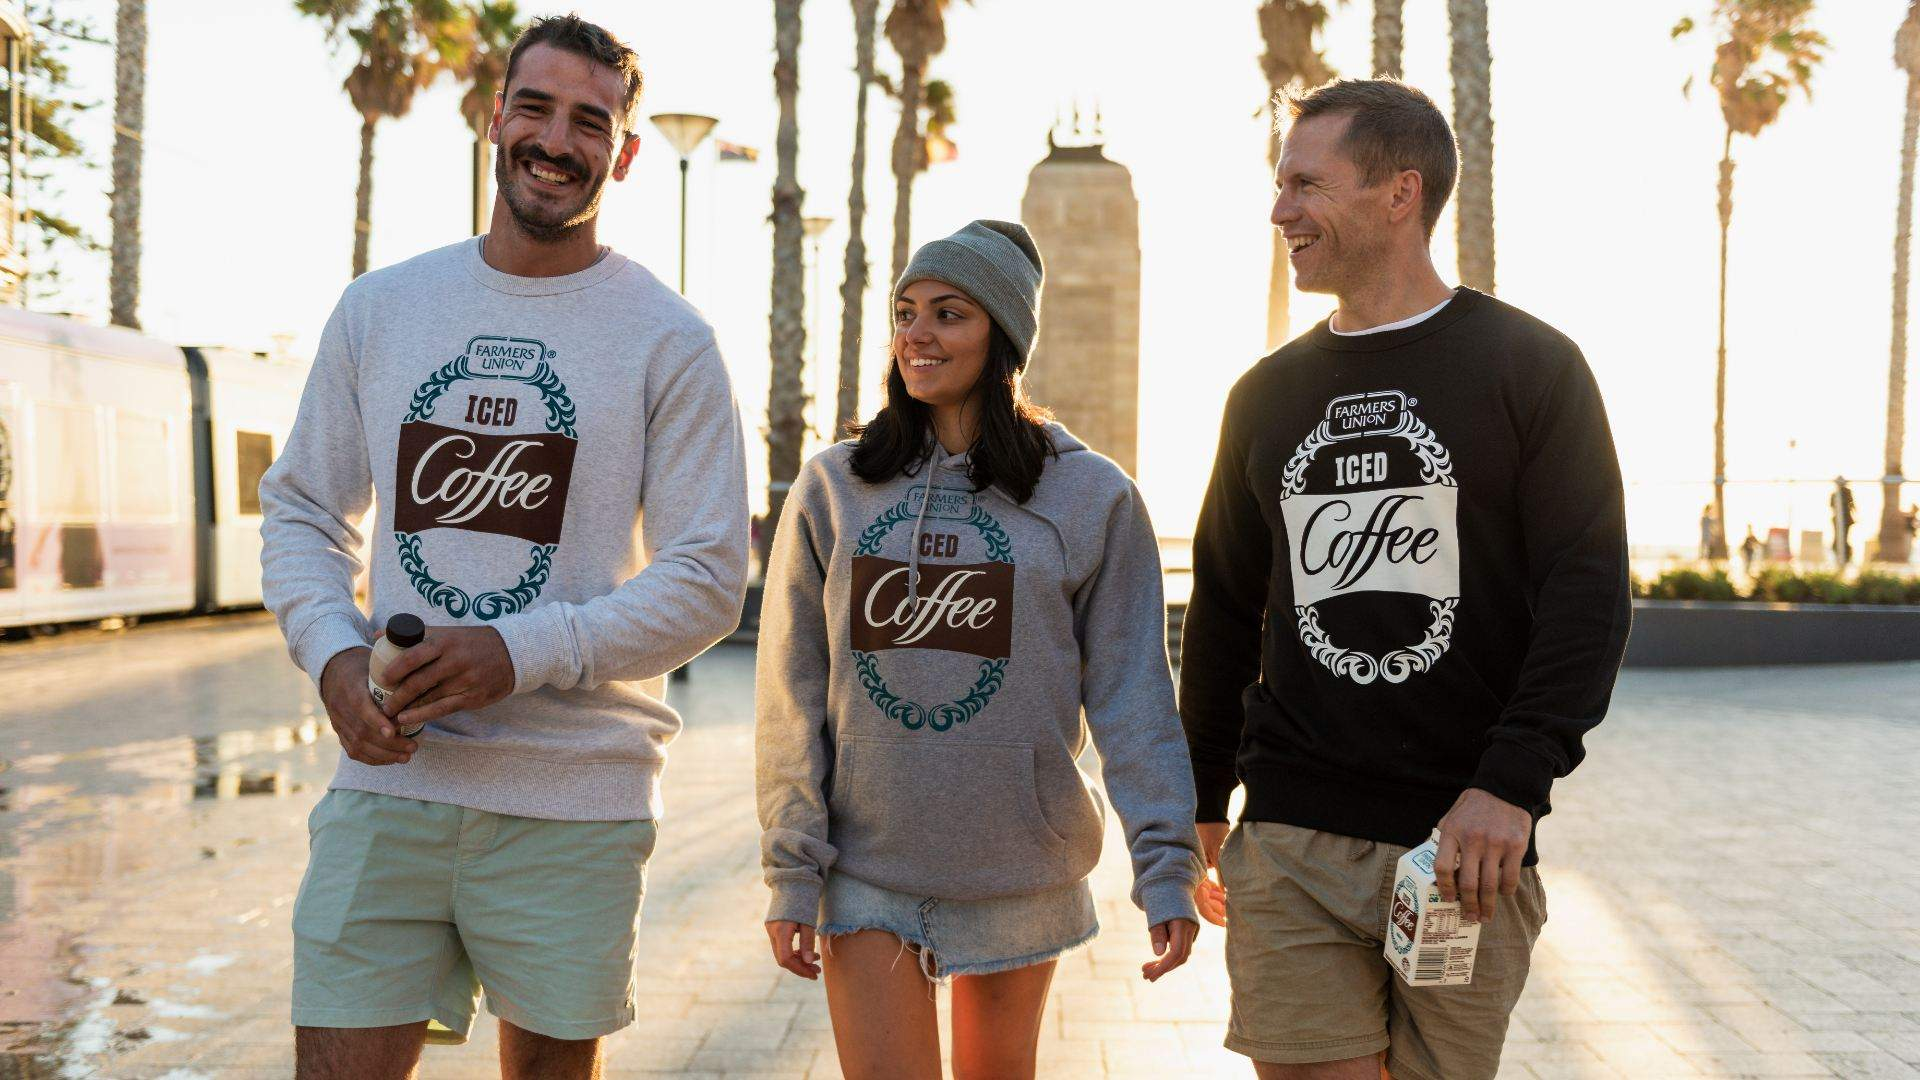 SA's Farmers Union Iced Coffee Is the Latest Aussie Brand to Release Its Own Retro Line of Merch